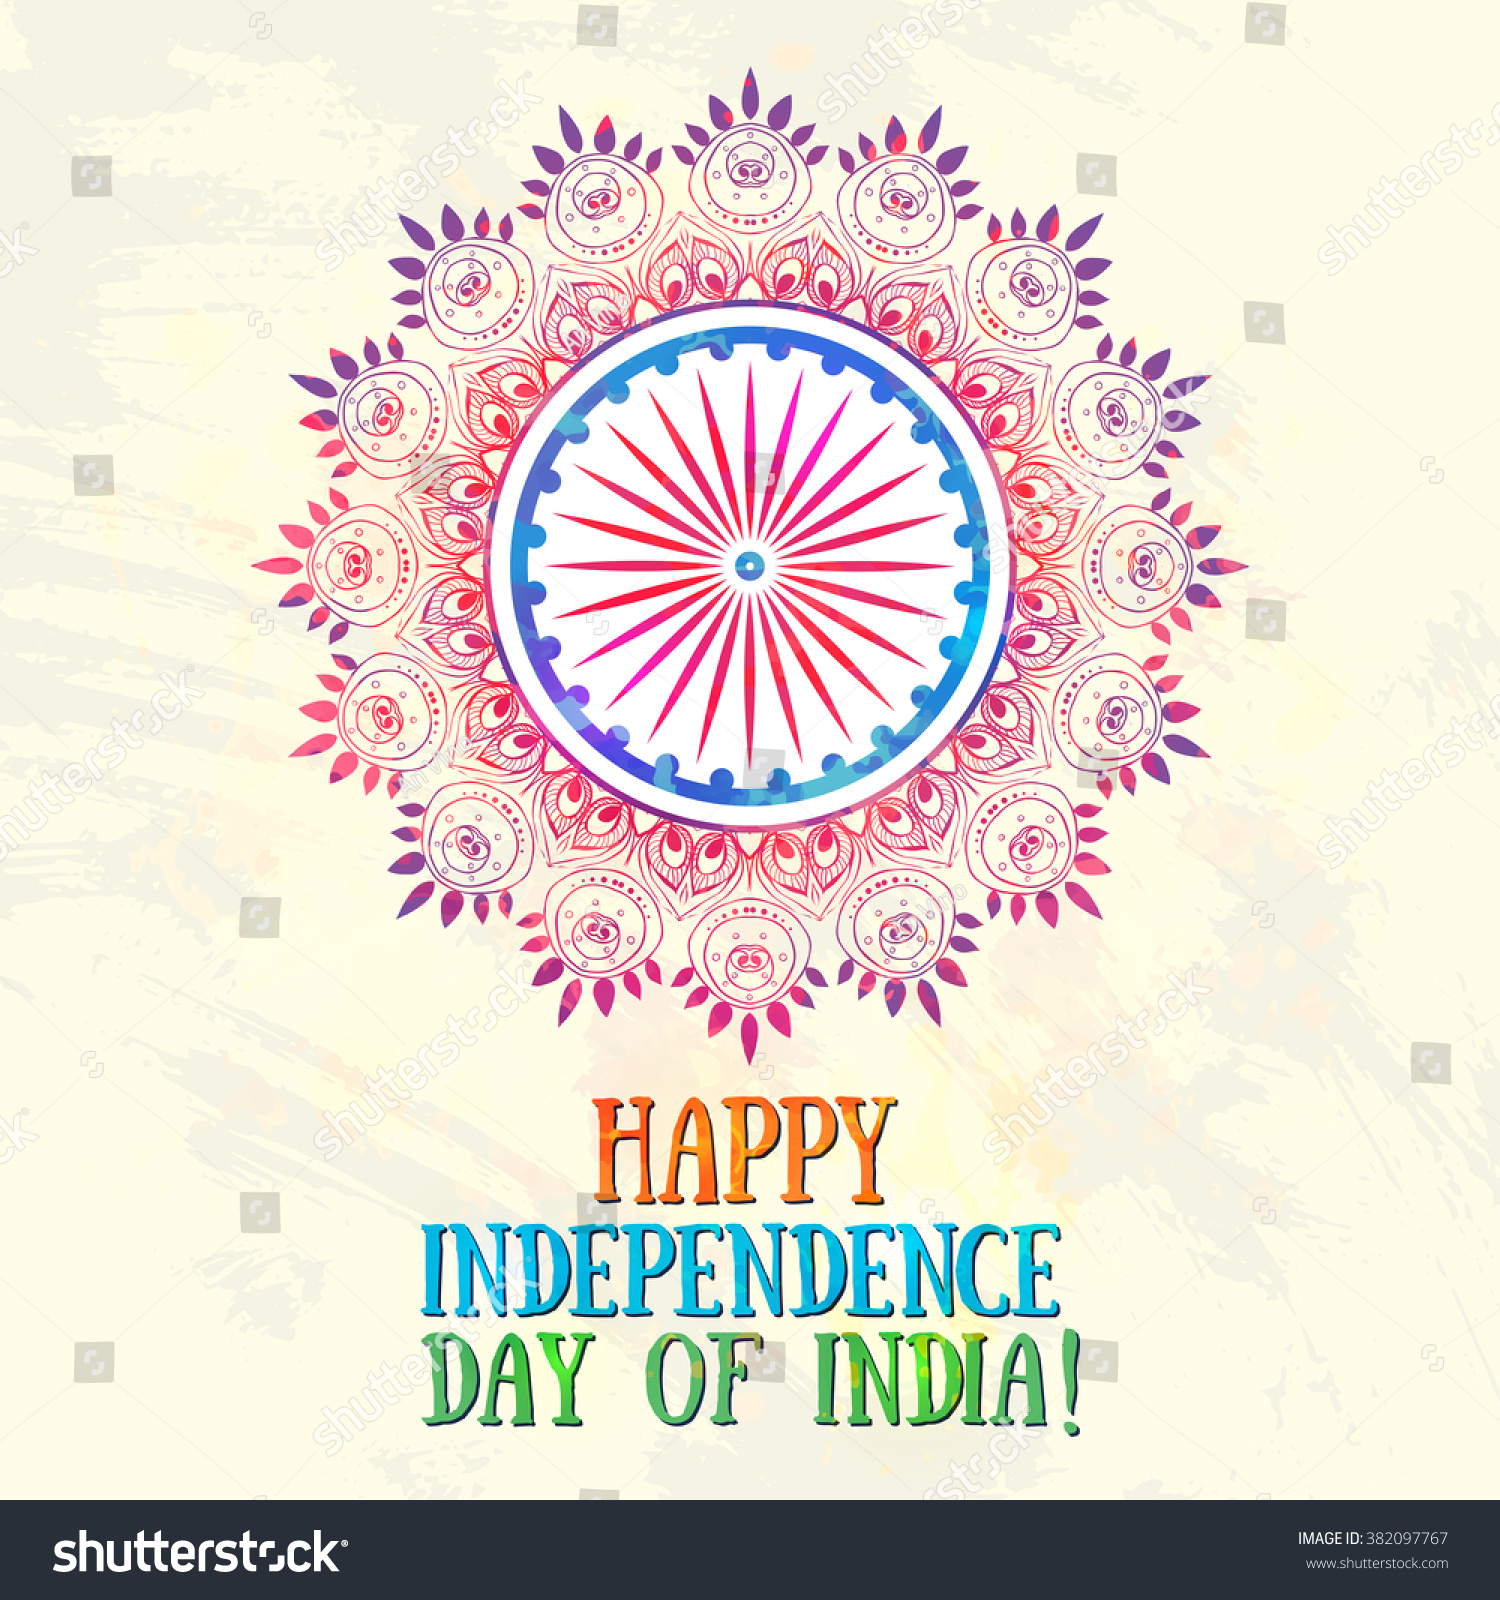 Poster design site - Poster Independence Day Of India It Celebrated Annually On August 15 Invitation Card In Vector India